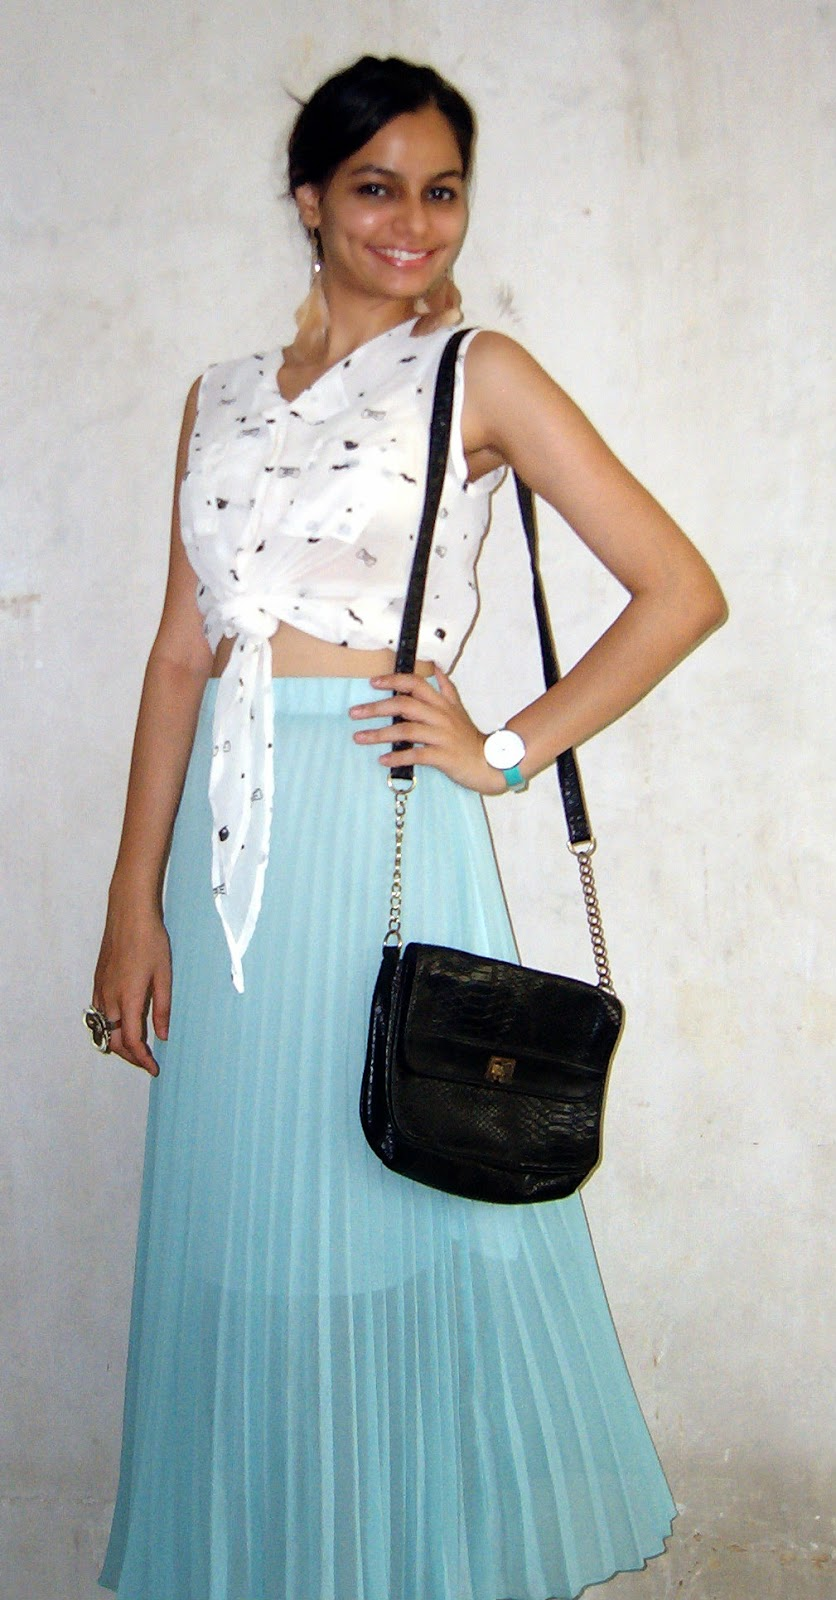 fashion blogger, indian fashion blogger, mumbai fashion blogger, pleated skirt, maxi skirt, sea green maxi skirt, moustache print shirt, croptop, how to wear a croptop, beachwear, feather earrings